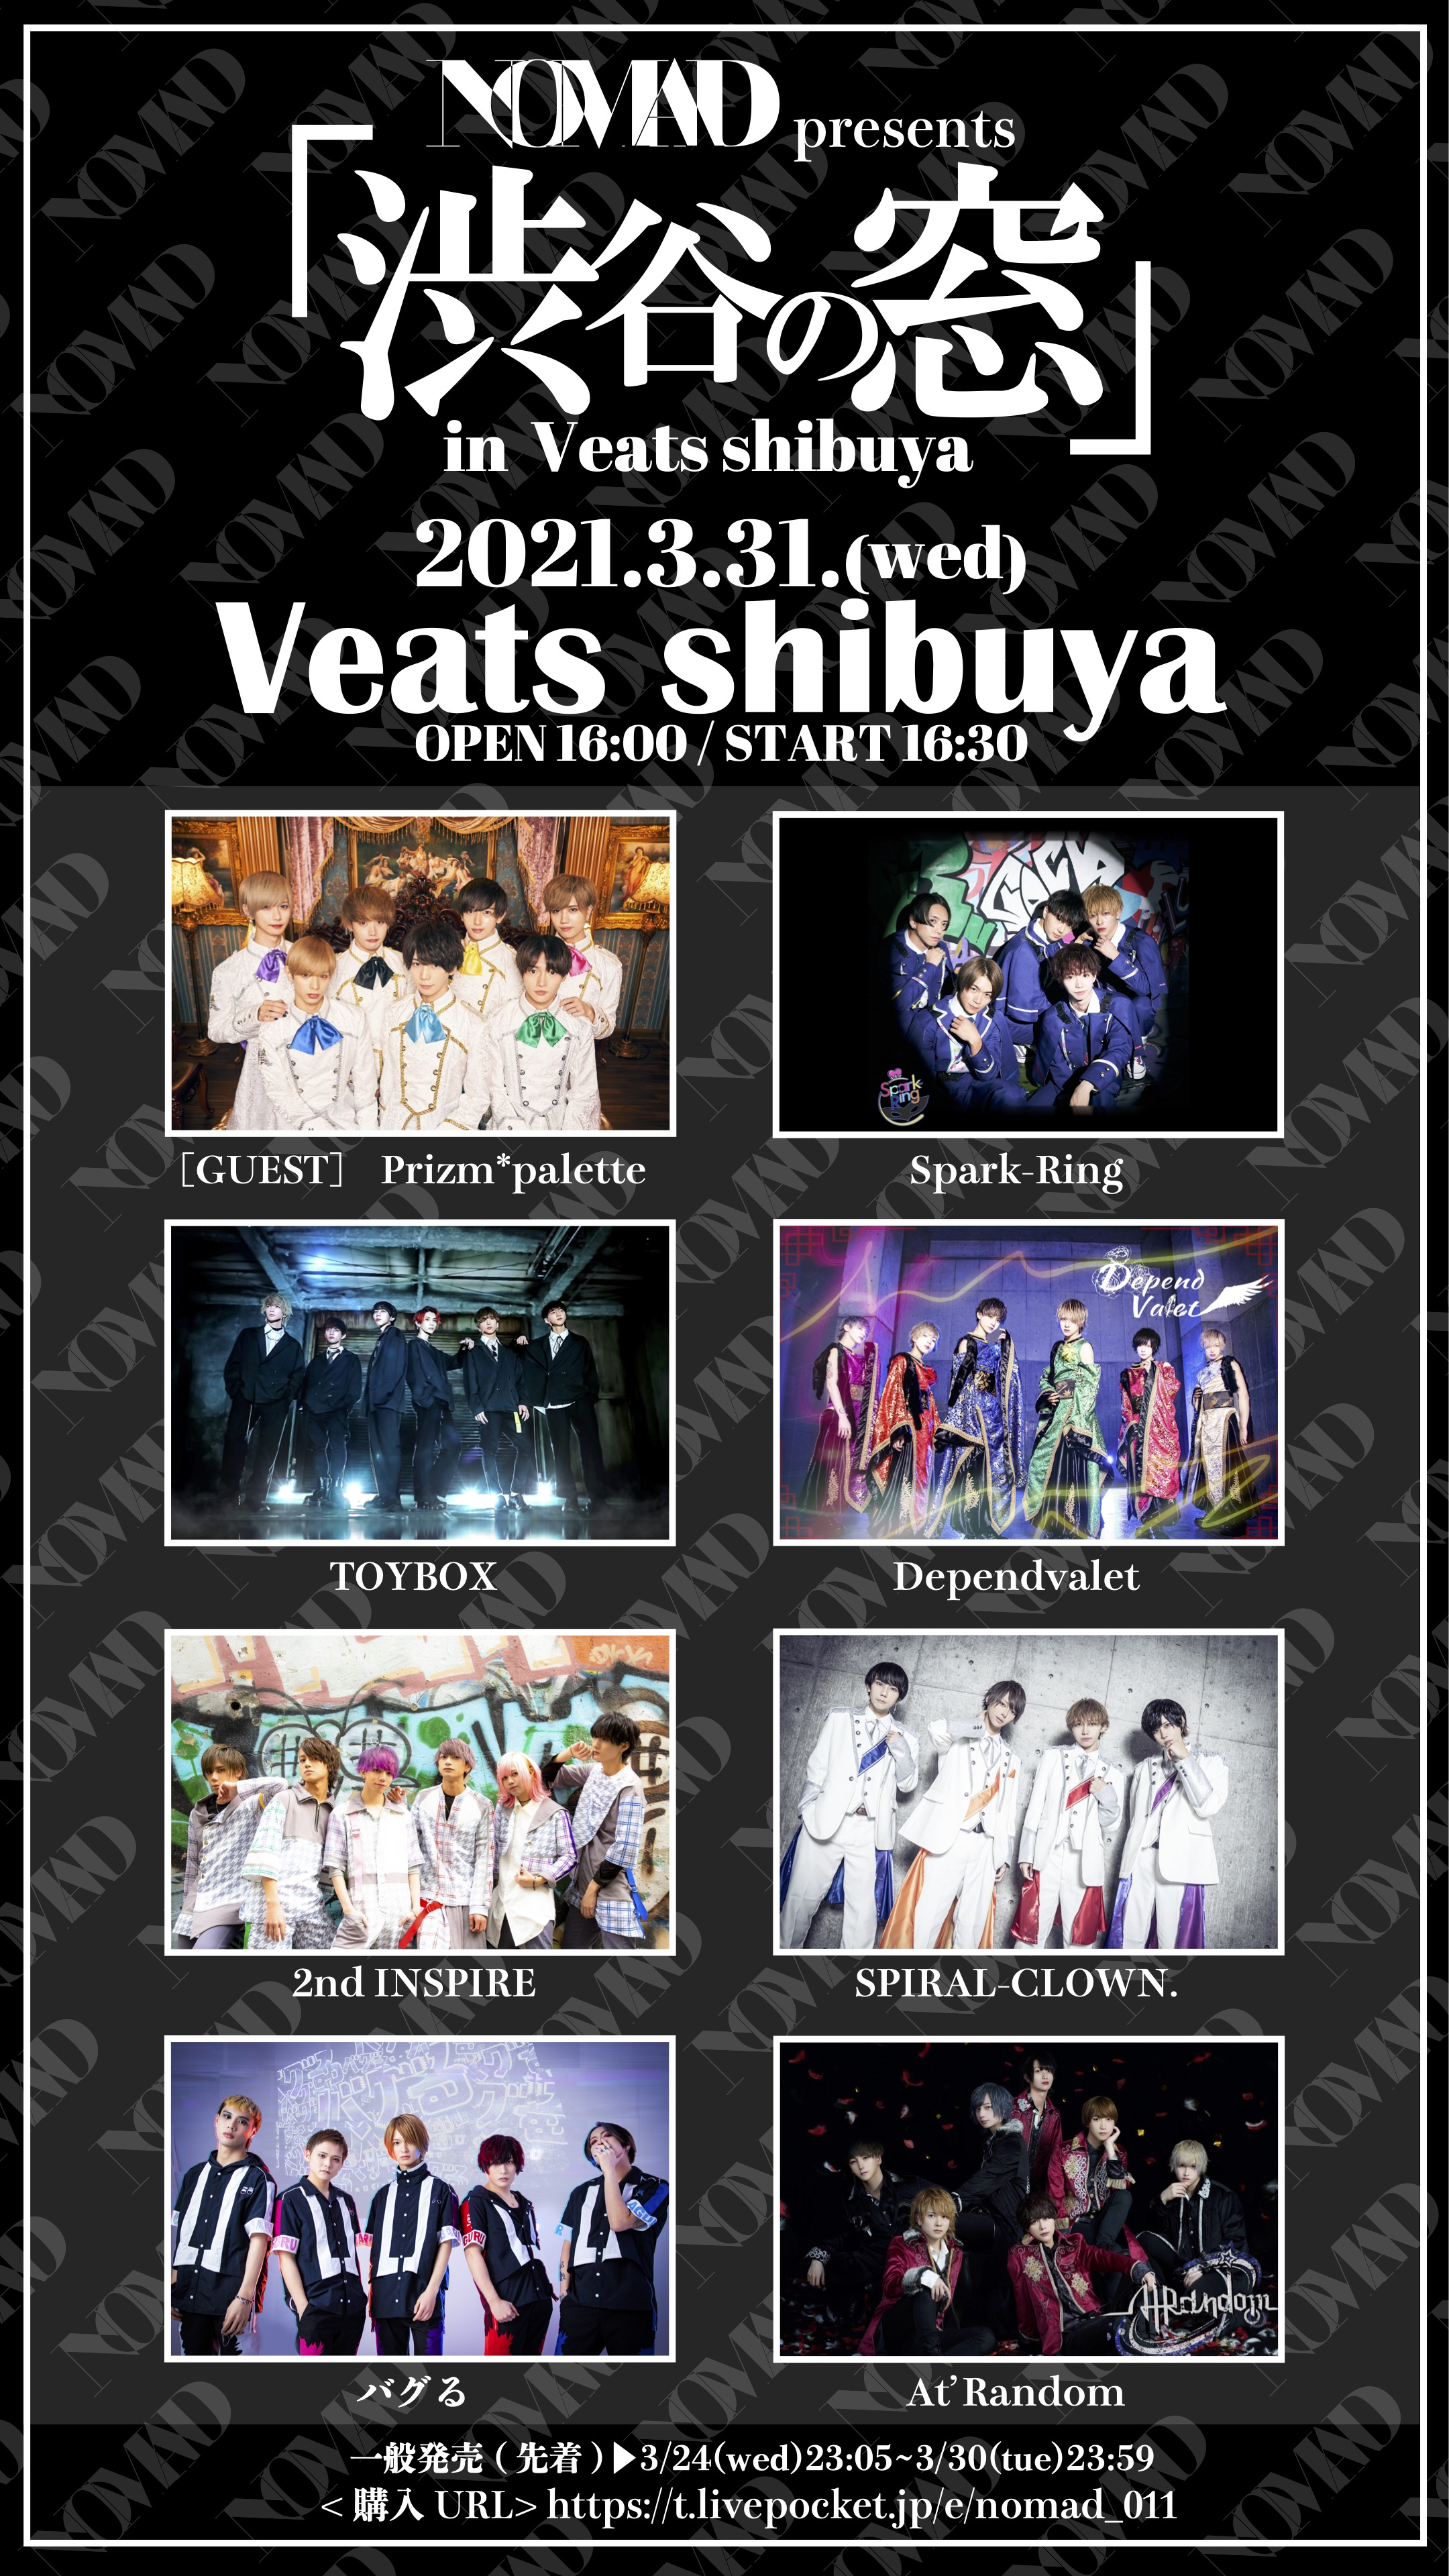 NOMAD presents「渋谷の窓」in Veats shibuya